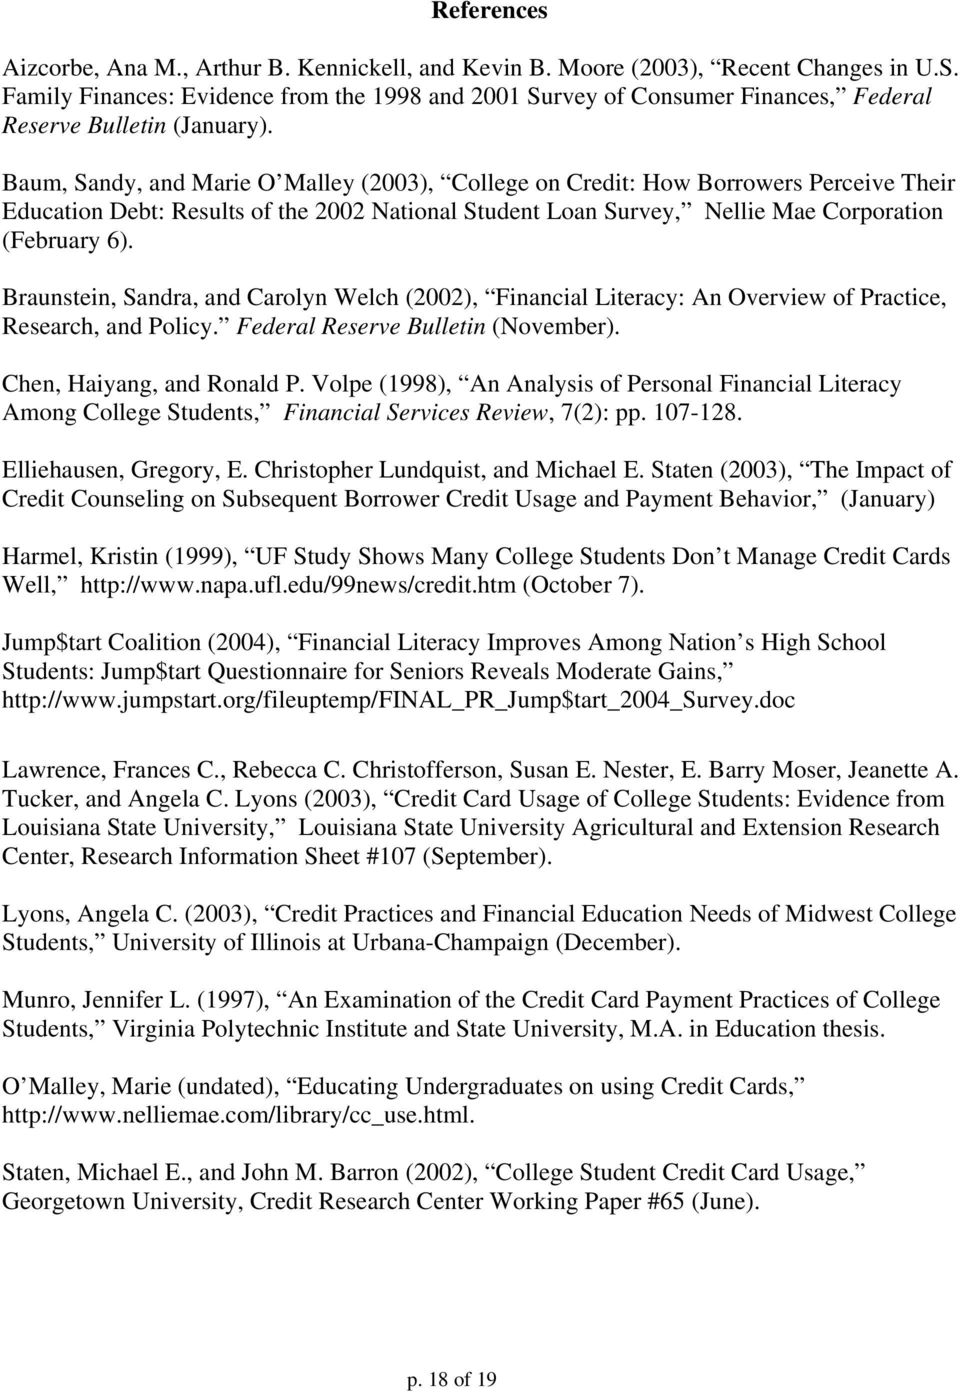 Baum, Sandy, and Marie O Malley (2003), College on Credit: How Borrowers Perceive Their Education Debt: Results of the 2002 National Student Loan Survey, Nellie Mae Corporation (February 6).